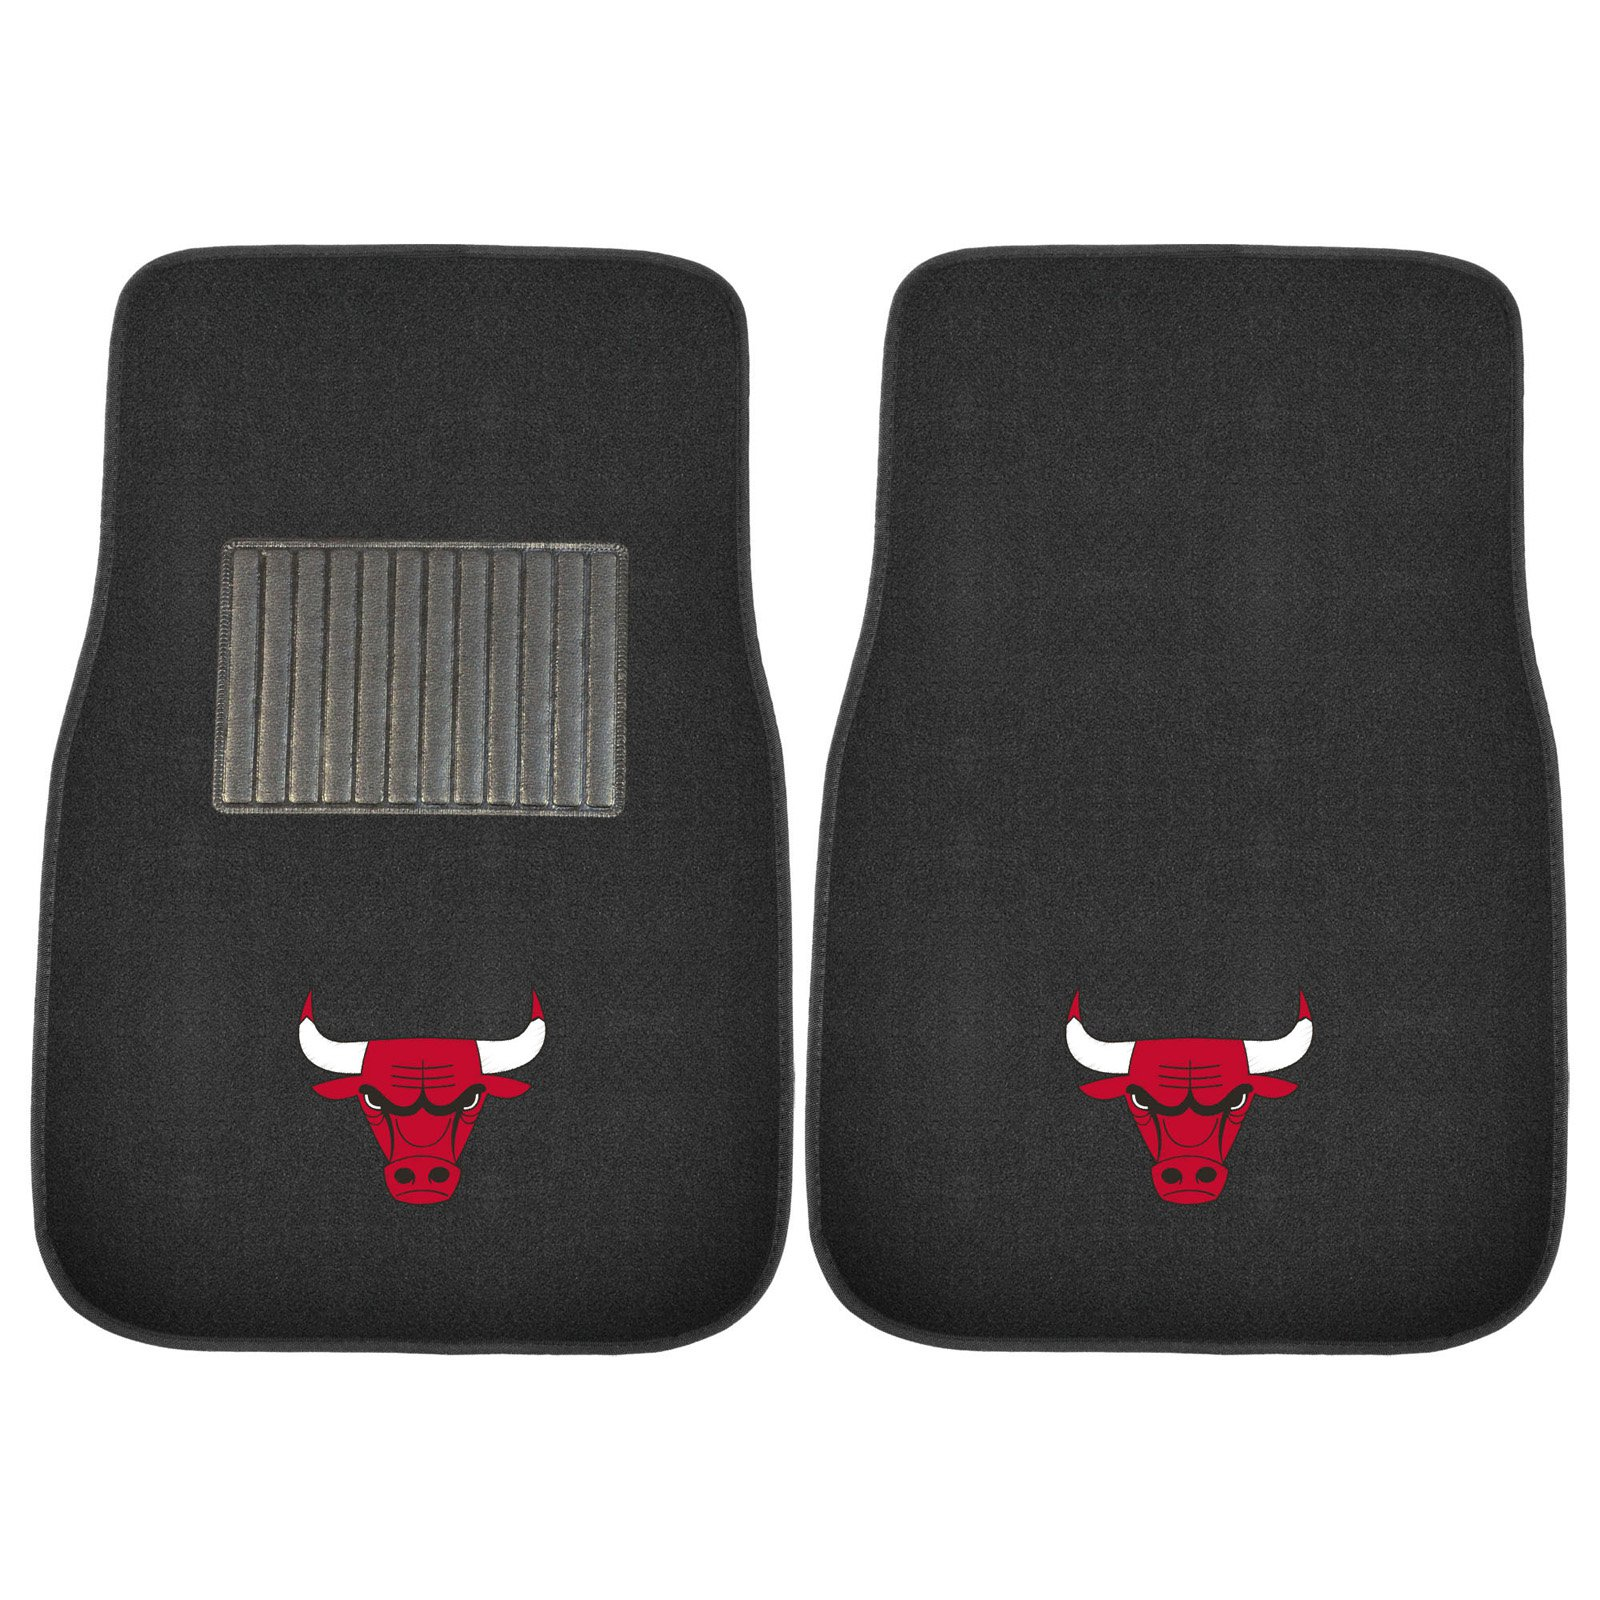 NBA Chicago Bulls Embroidered Car Mats